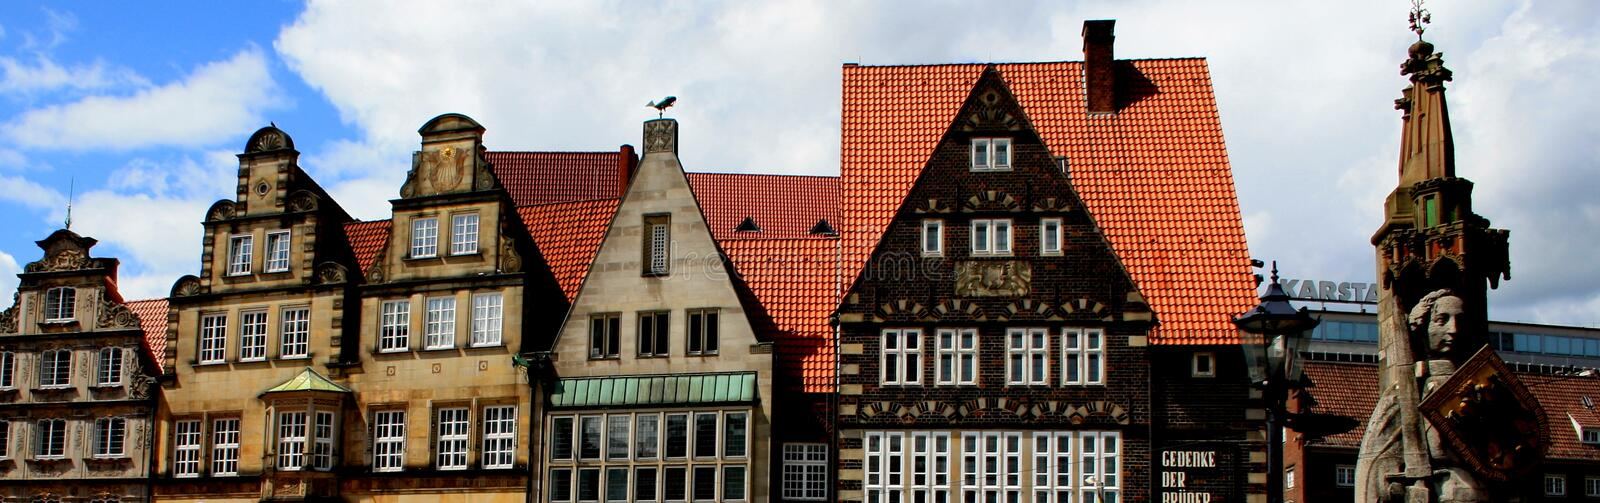 Bremen. The statue of Roland and old buildings in Bremen stock photography